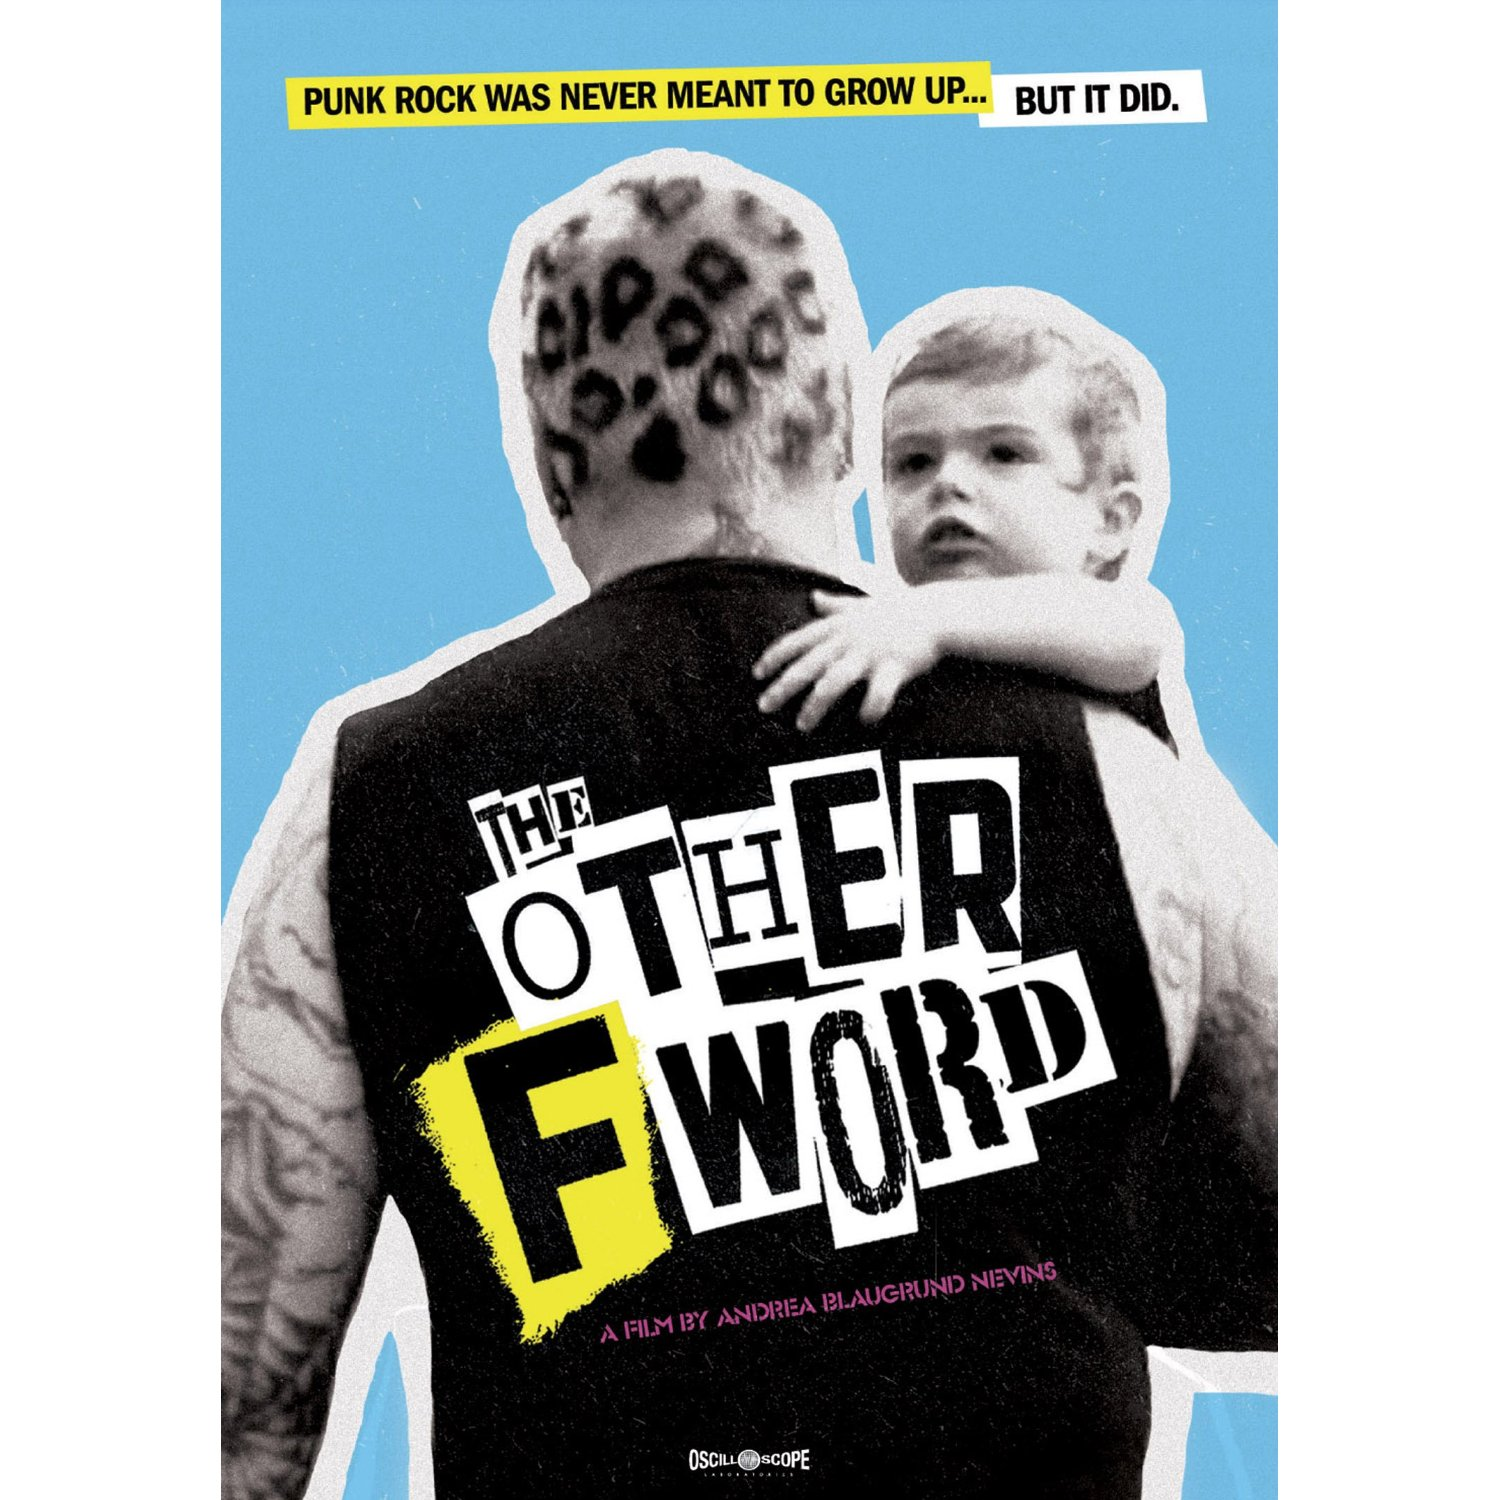 DVD Review: 'The Other F Word' Shows the Softer Side of Punk Rock Stars